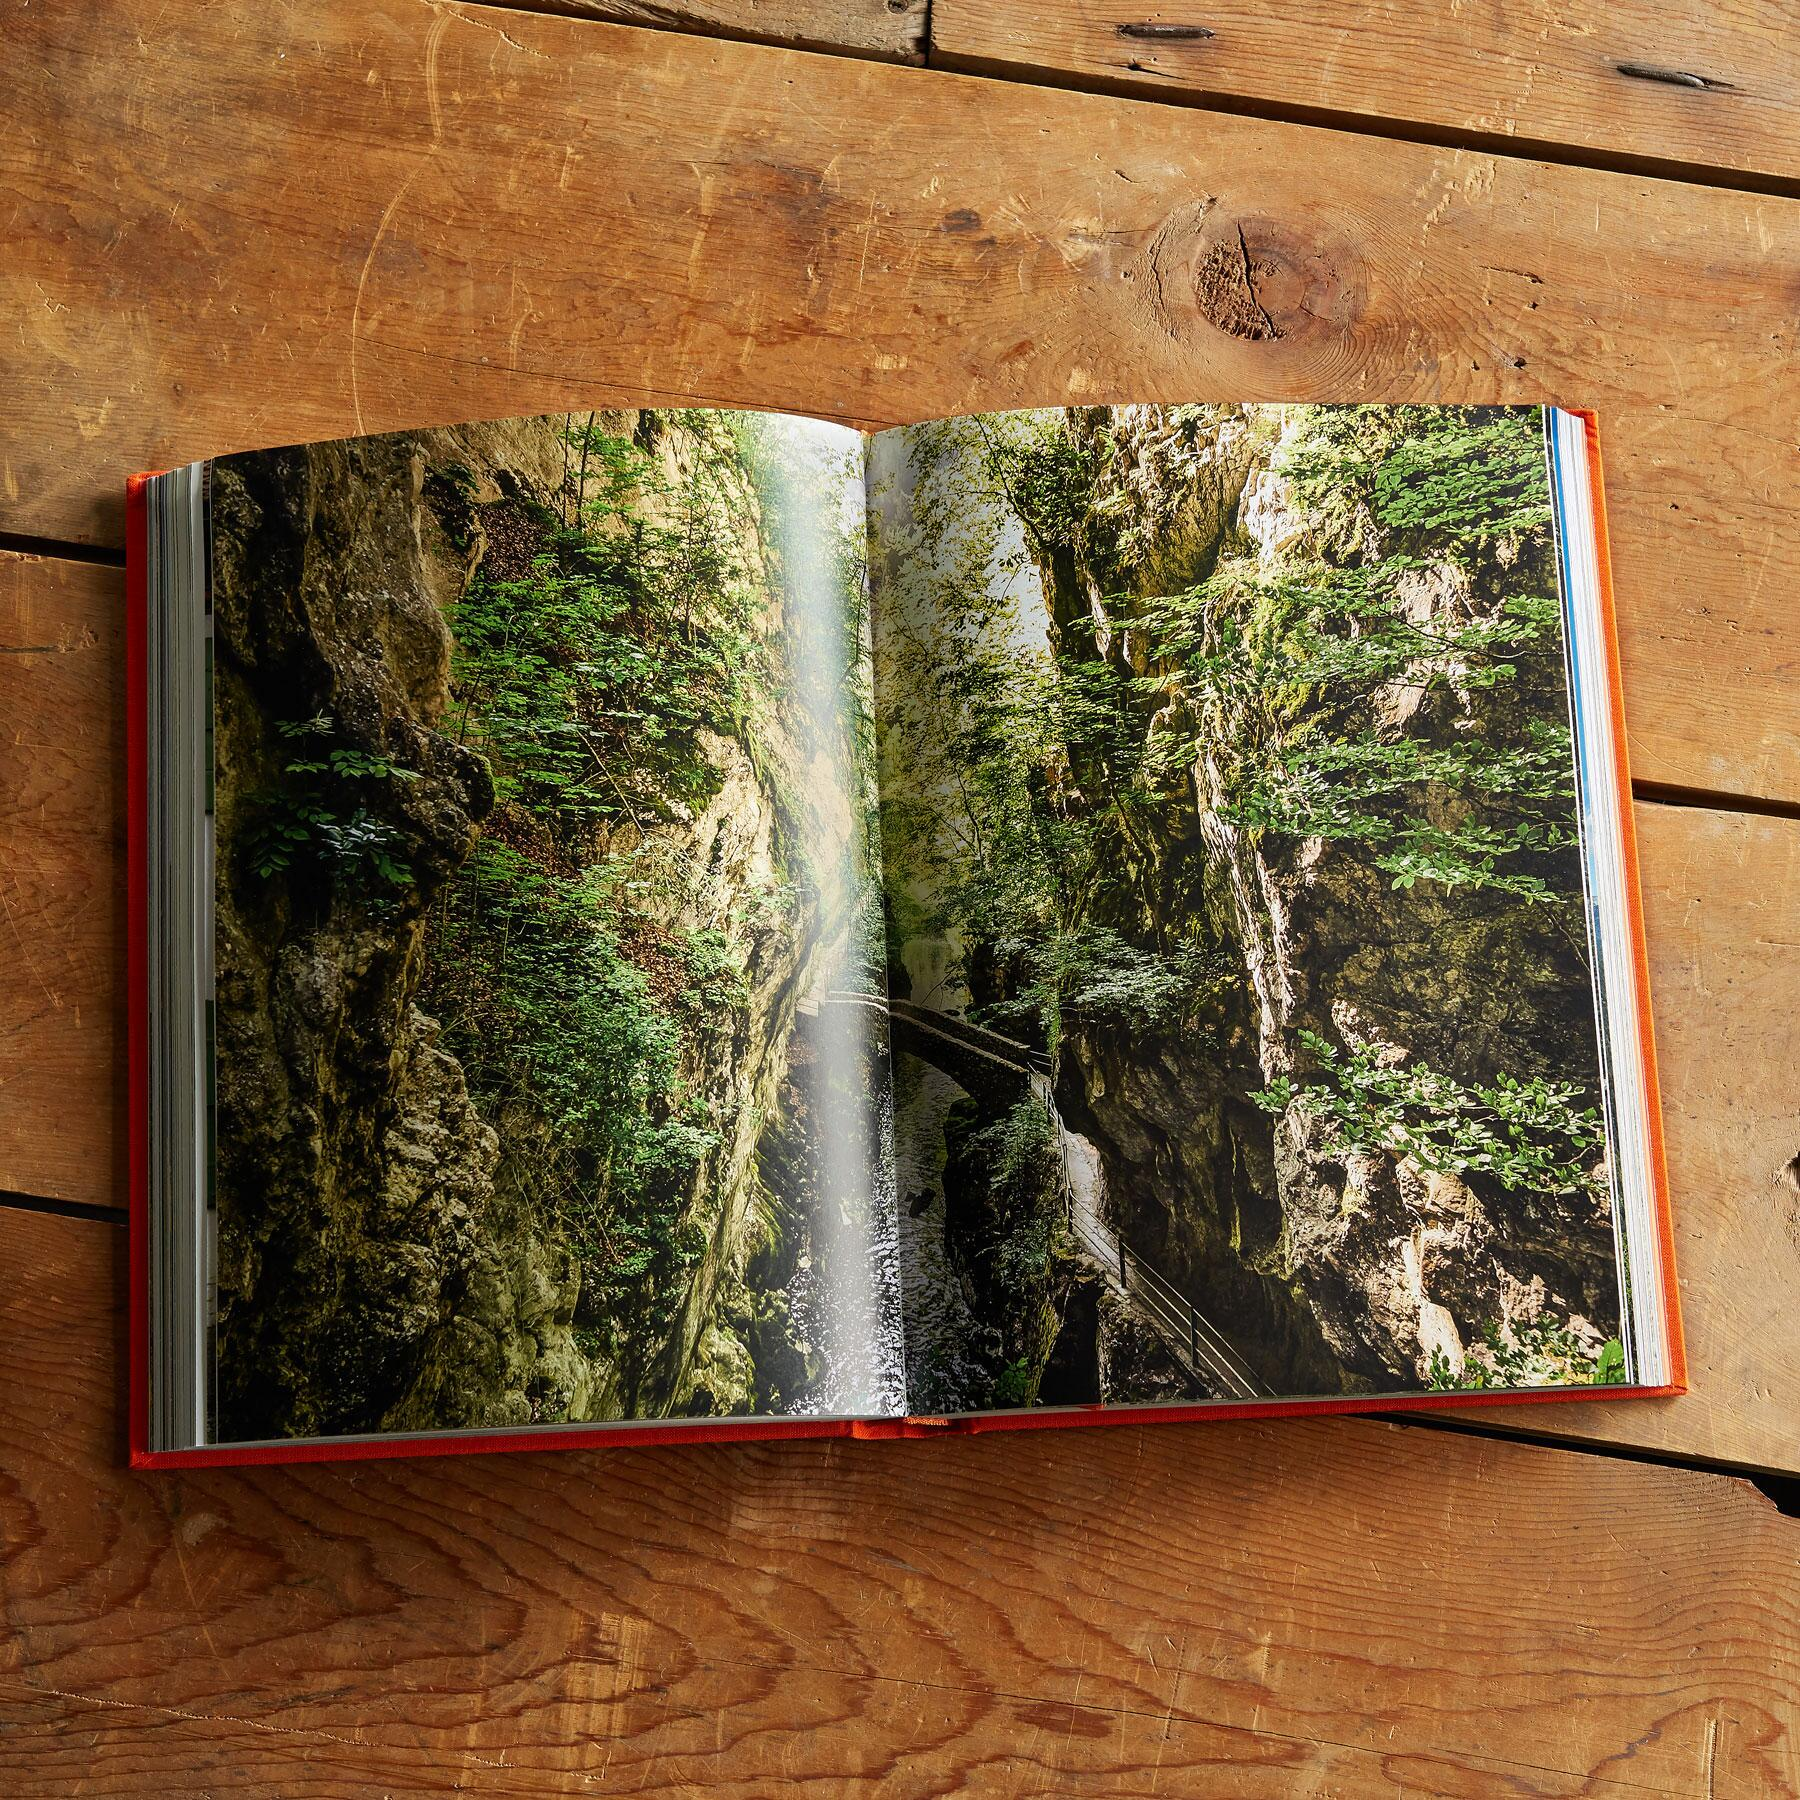 THE NEW YORK TIMES EXPLORER MOUNTAINS, DESERTS & PLAINS BOOK: View 3